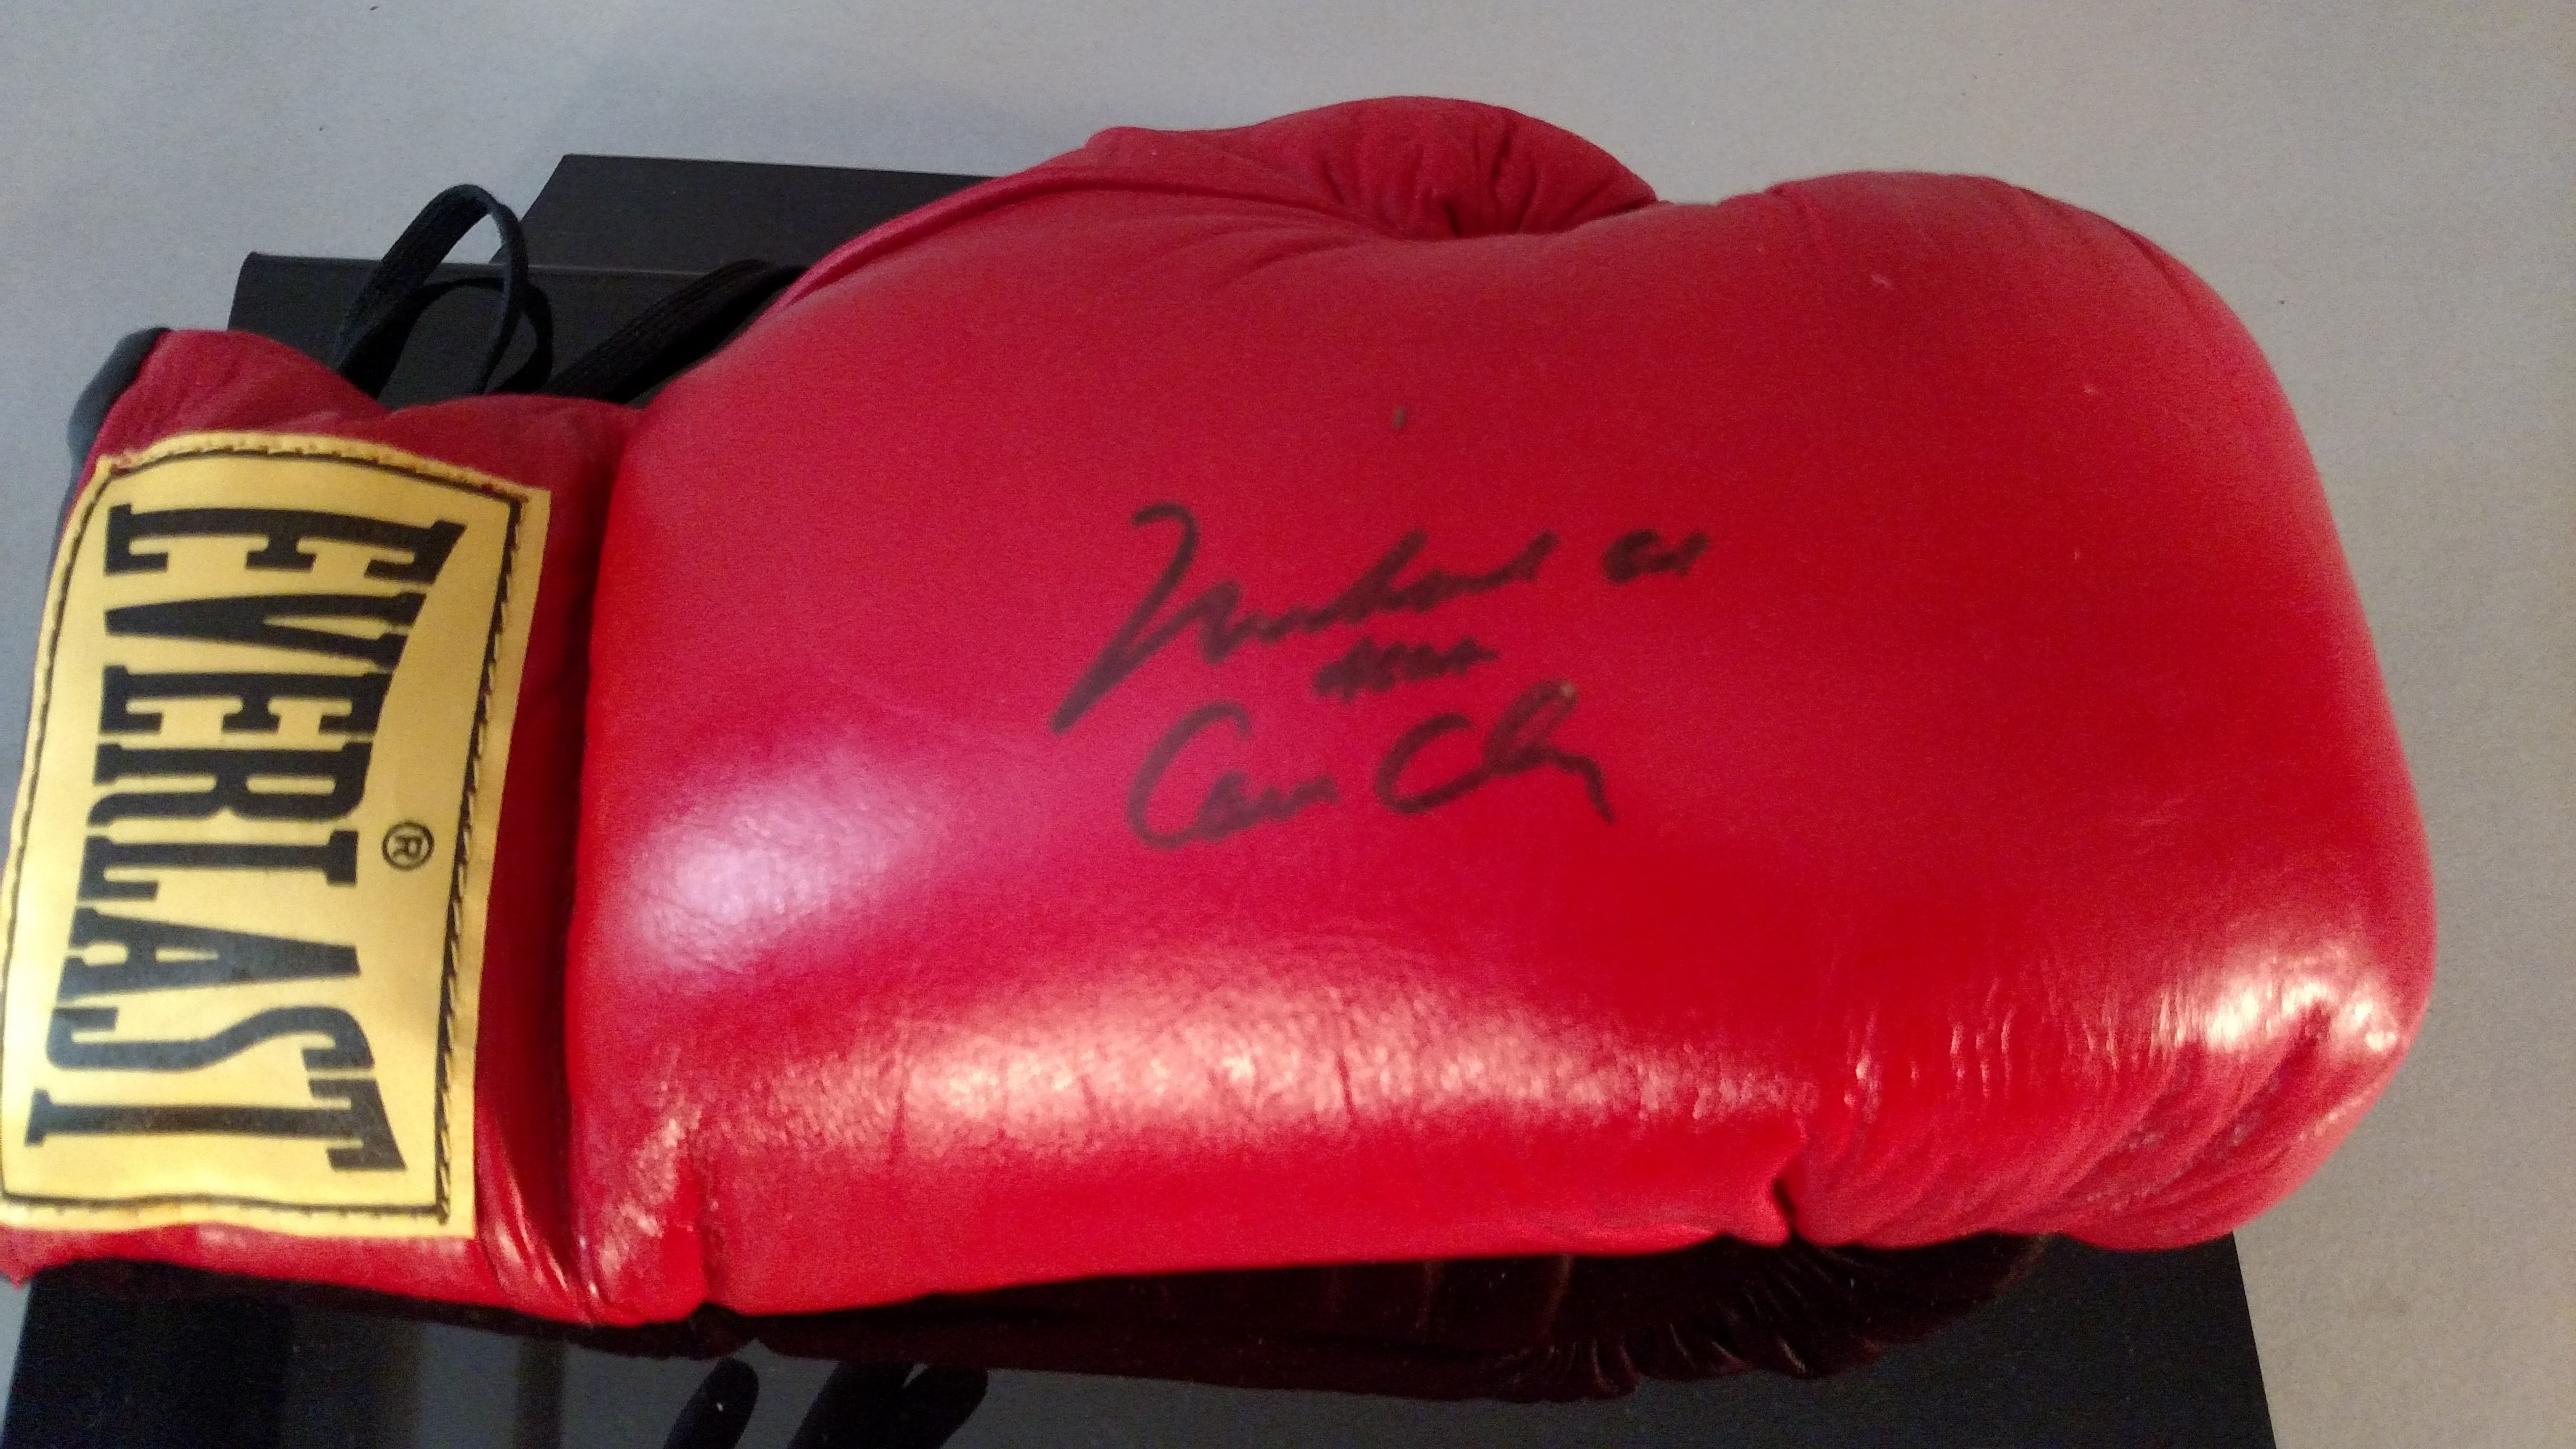 6516fed6cfb Muhammad Ali aka Cassius Clay Signed Boxing Glove